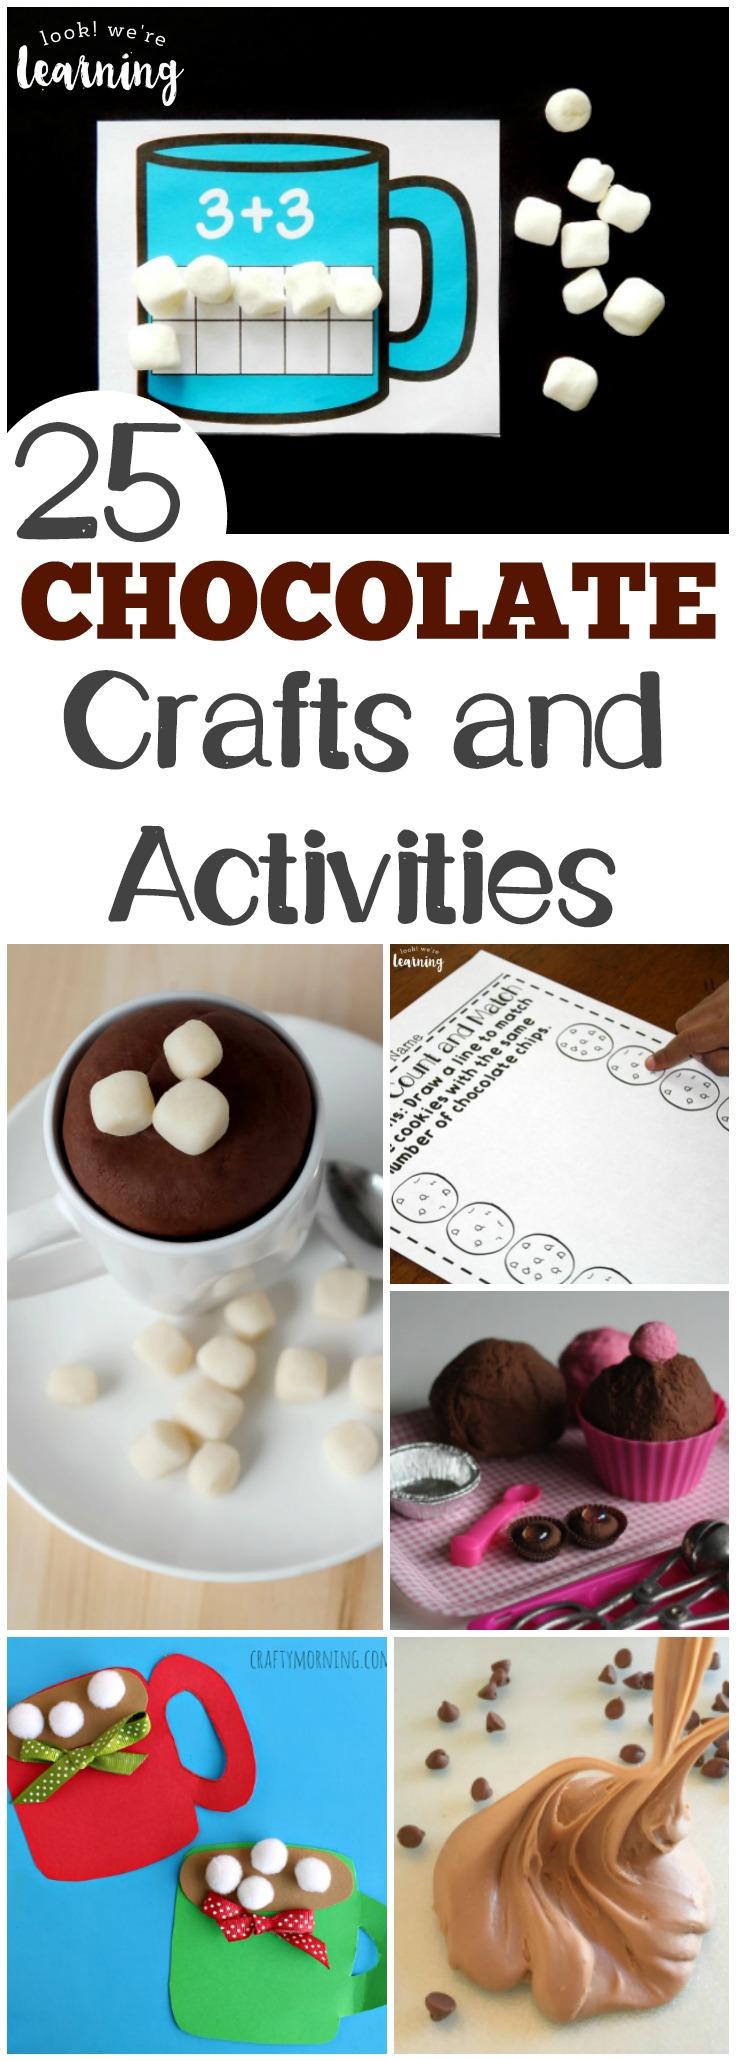 Make learning sweet with these fun chocolate craft ideas and activities for kids!